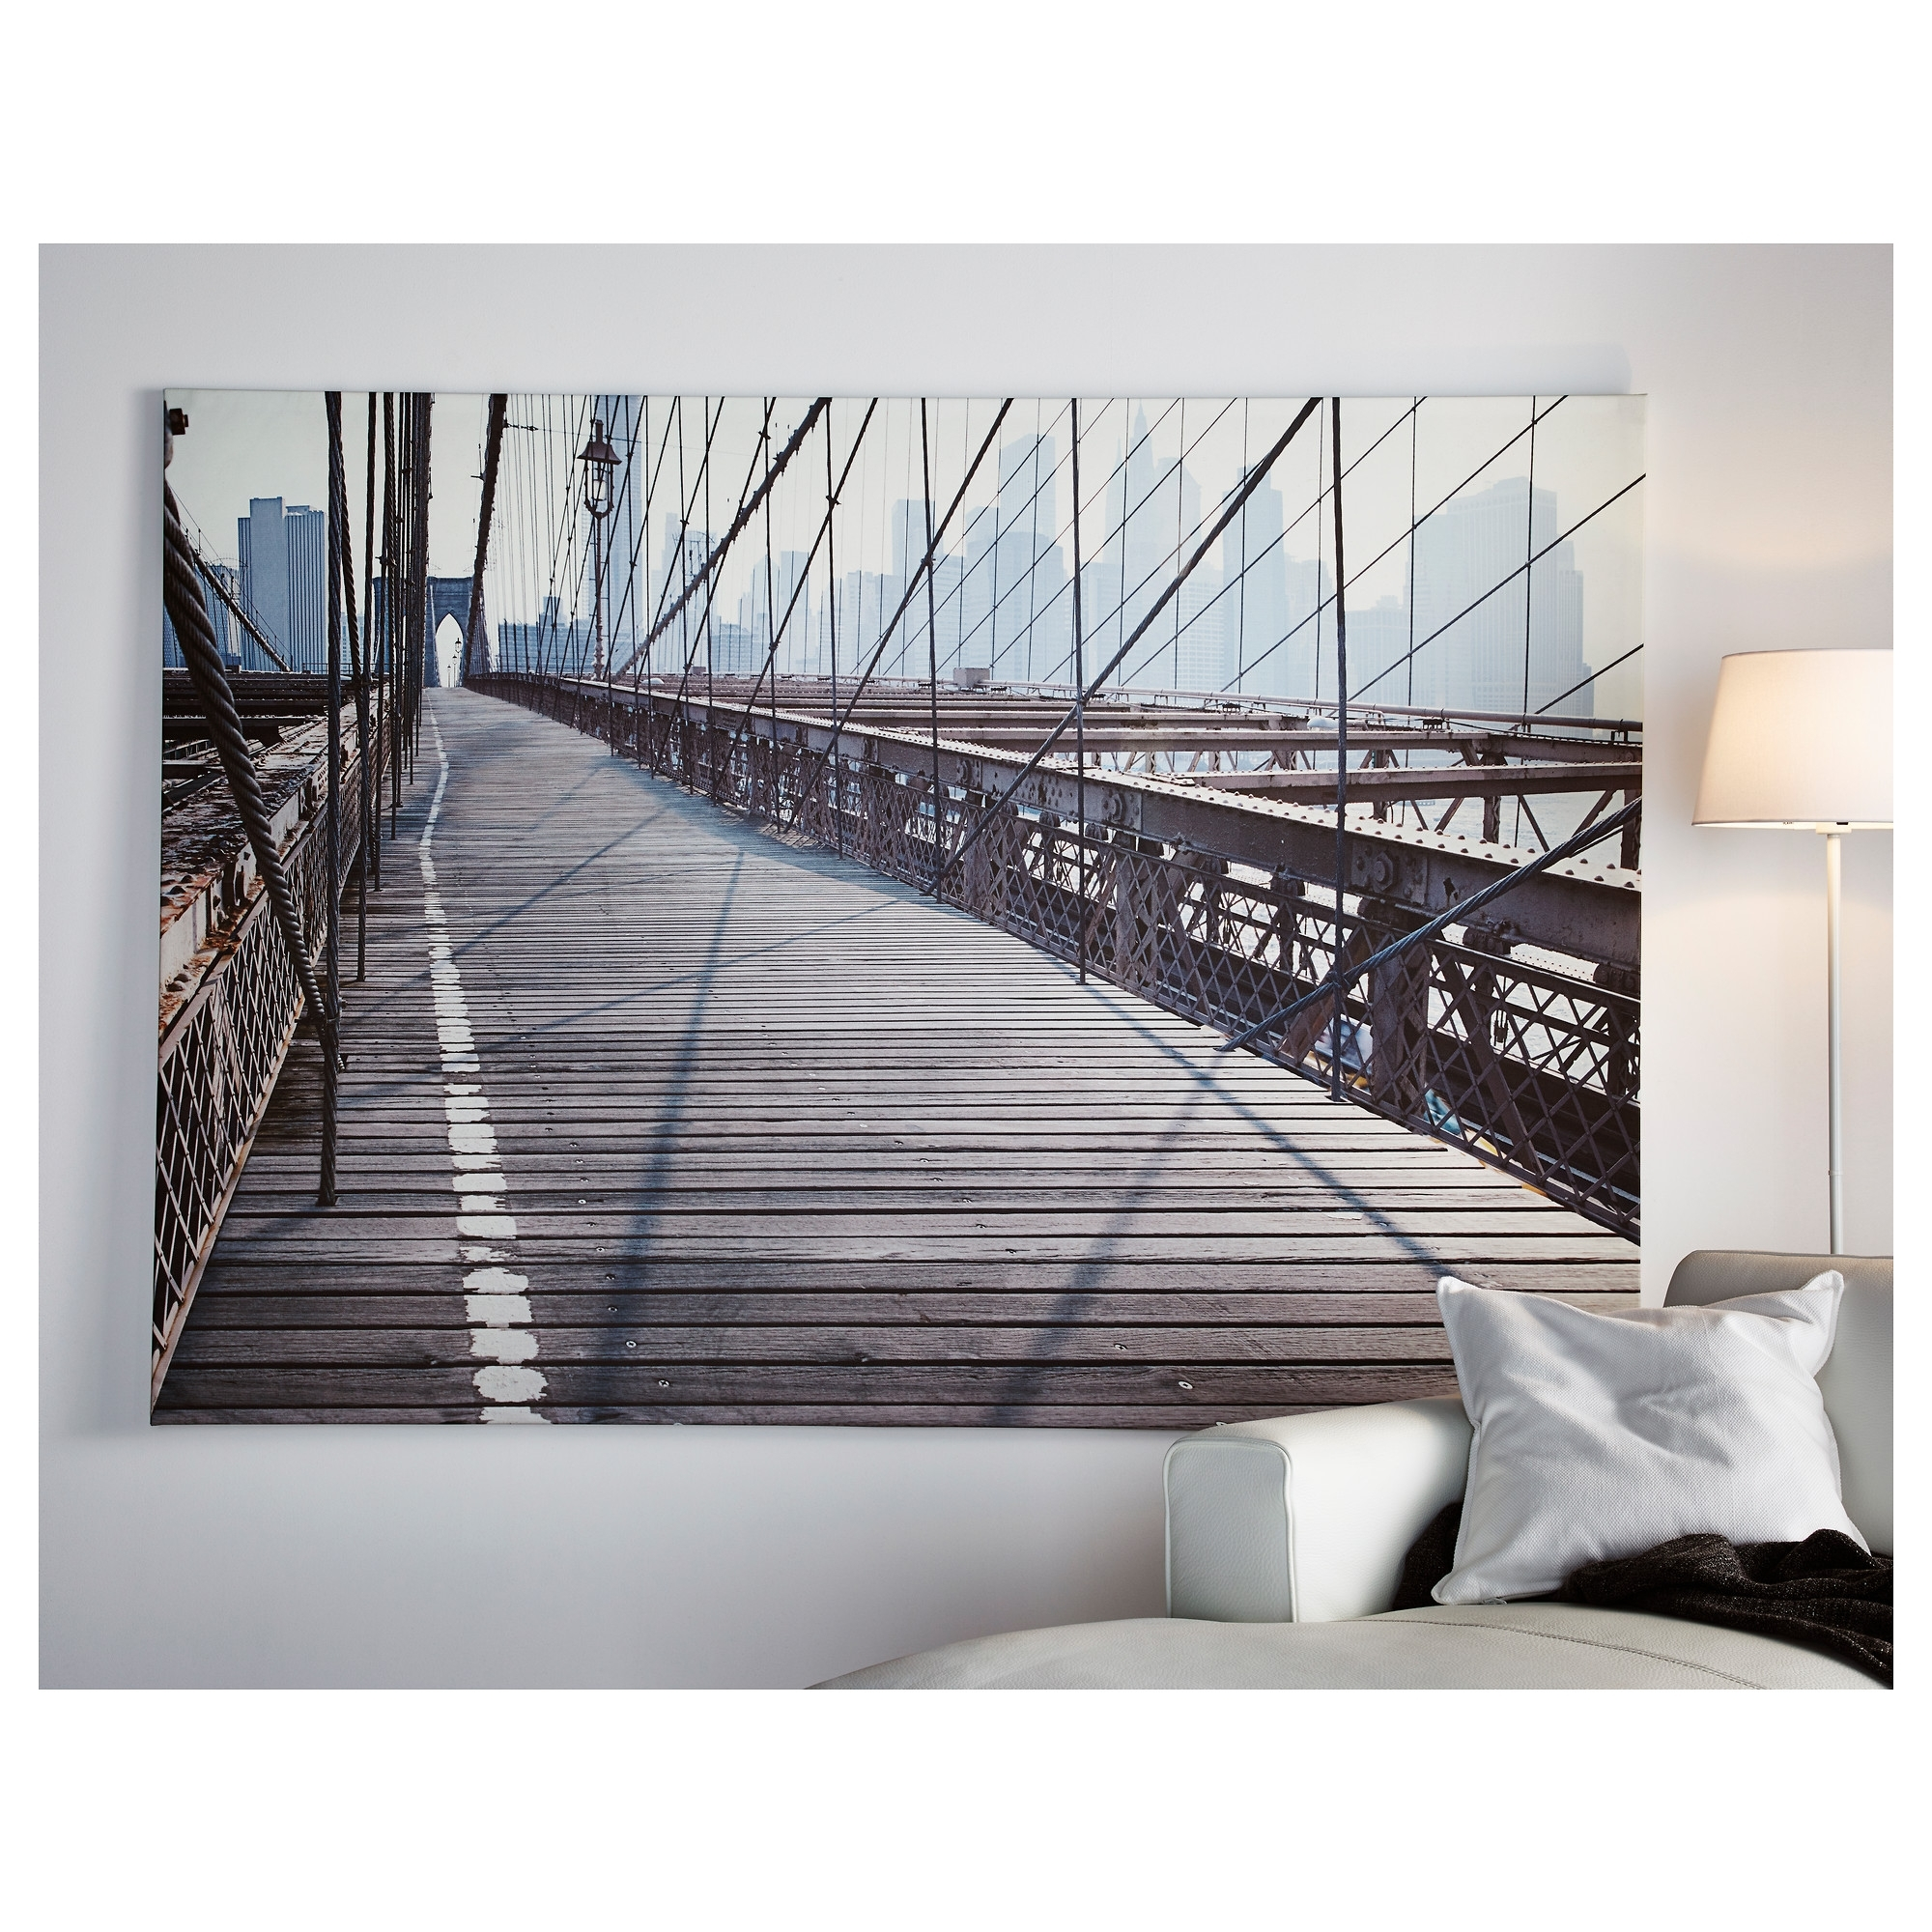 Ikea Wall Art Canvas – Arsmart Throughout Well Known Ikea Canvas Wall Art (View 11 of 15)